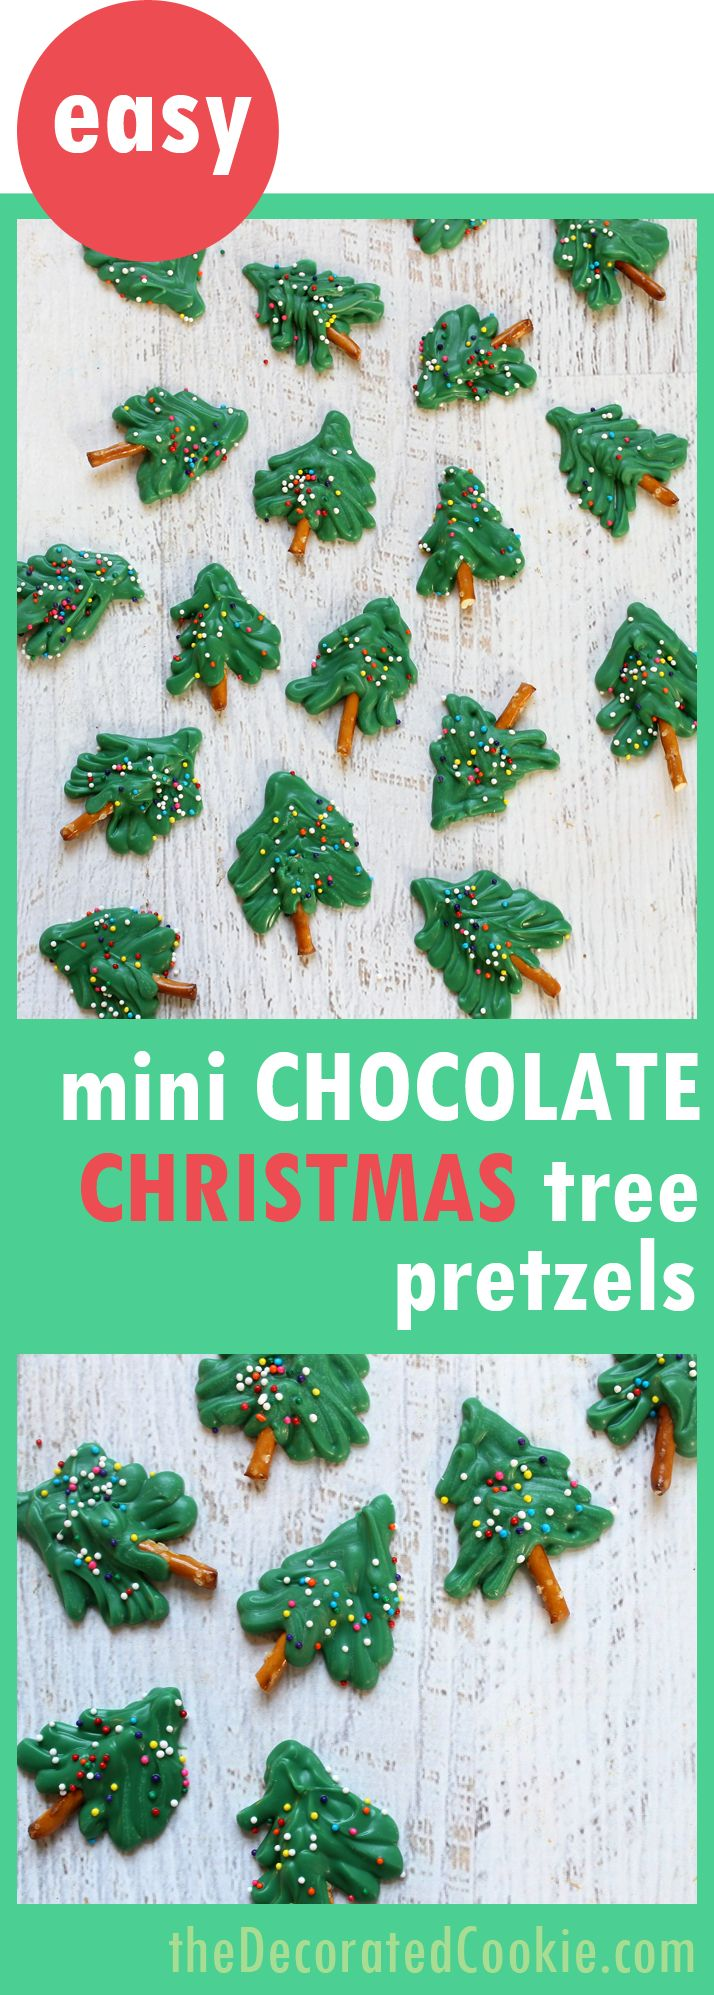 mini chocolate Christmas tree pretzels -- fun food idea for Christmas -- great homemade food gift